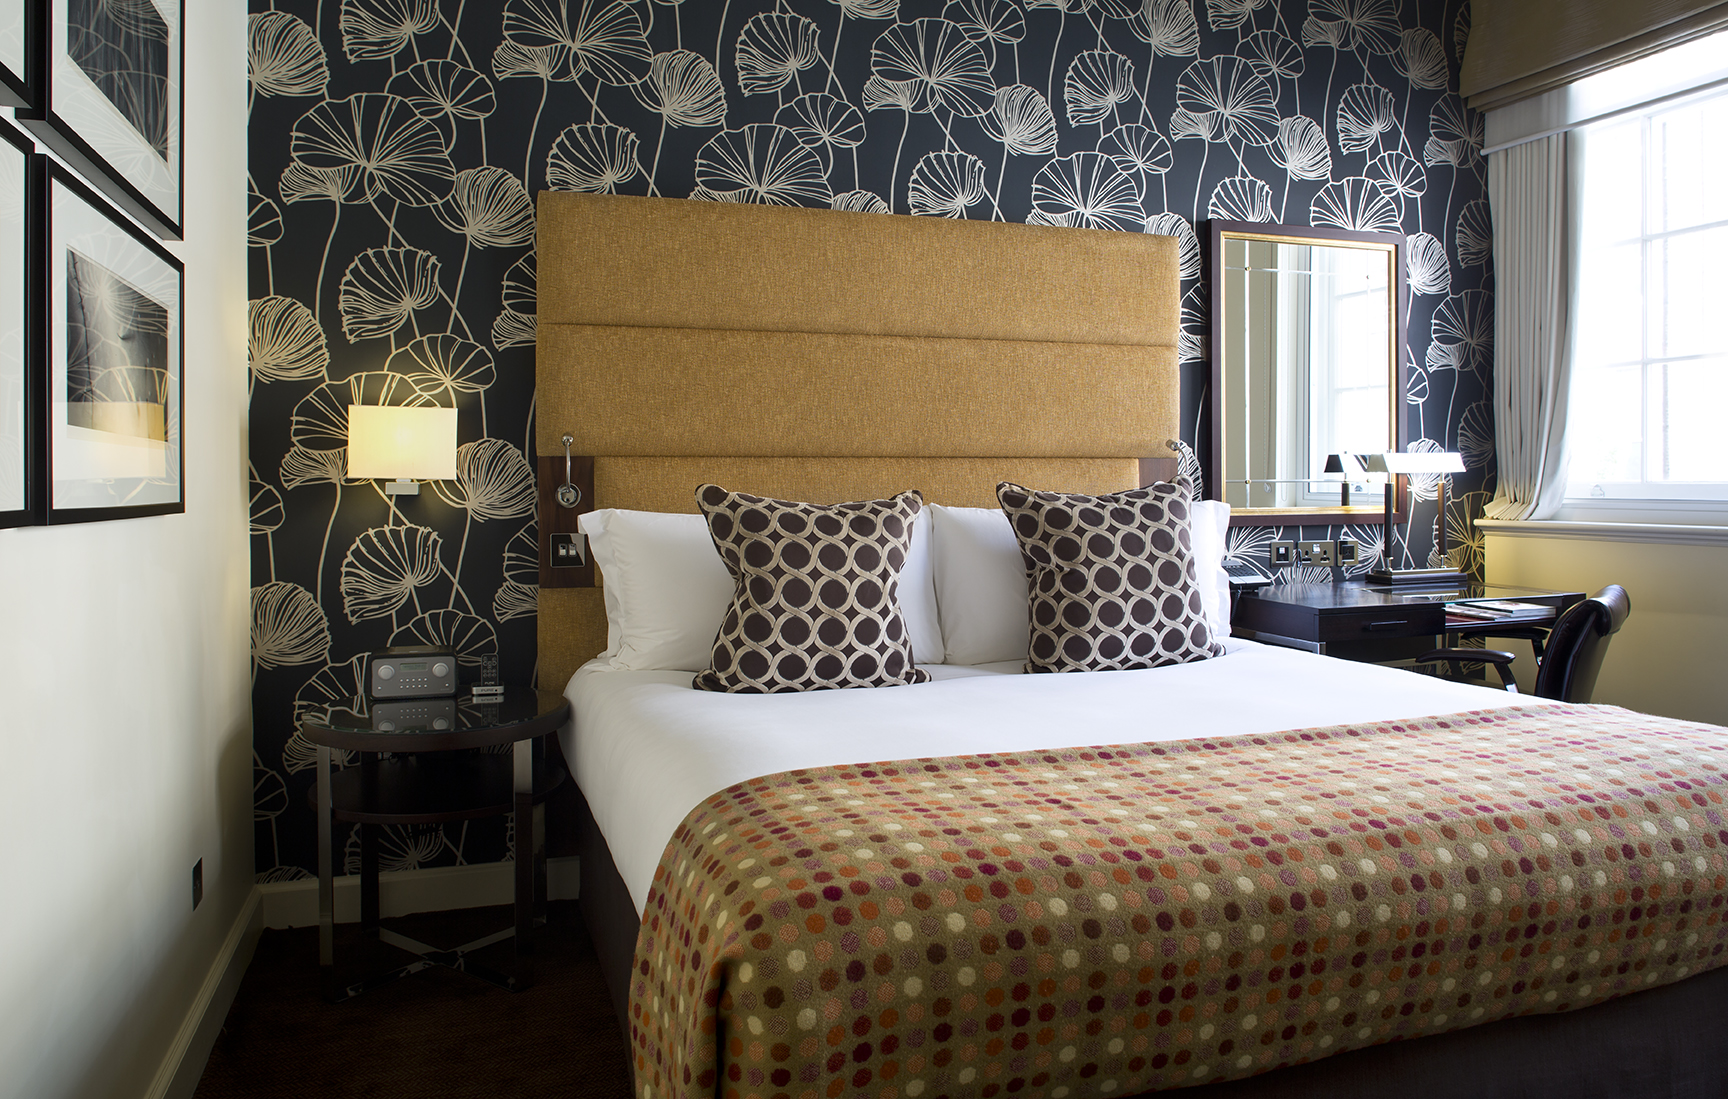 Guestroom, The Arch London.  Photography must be credited to The Arch London.jpg